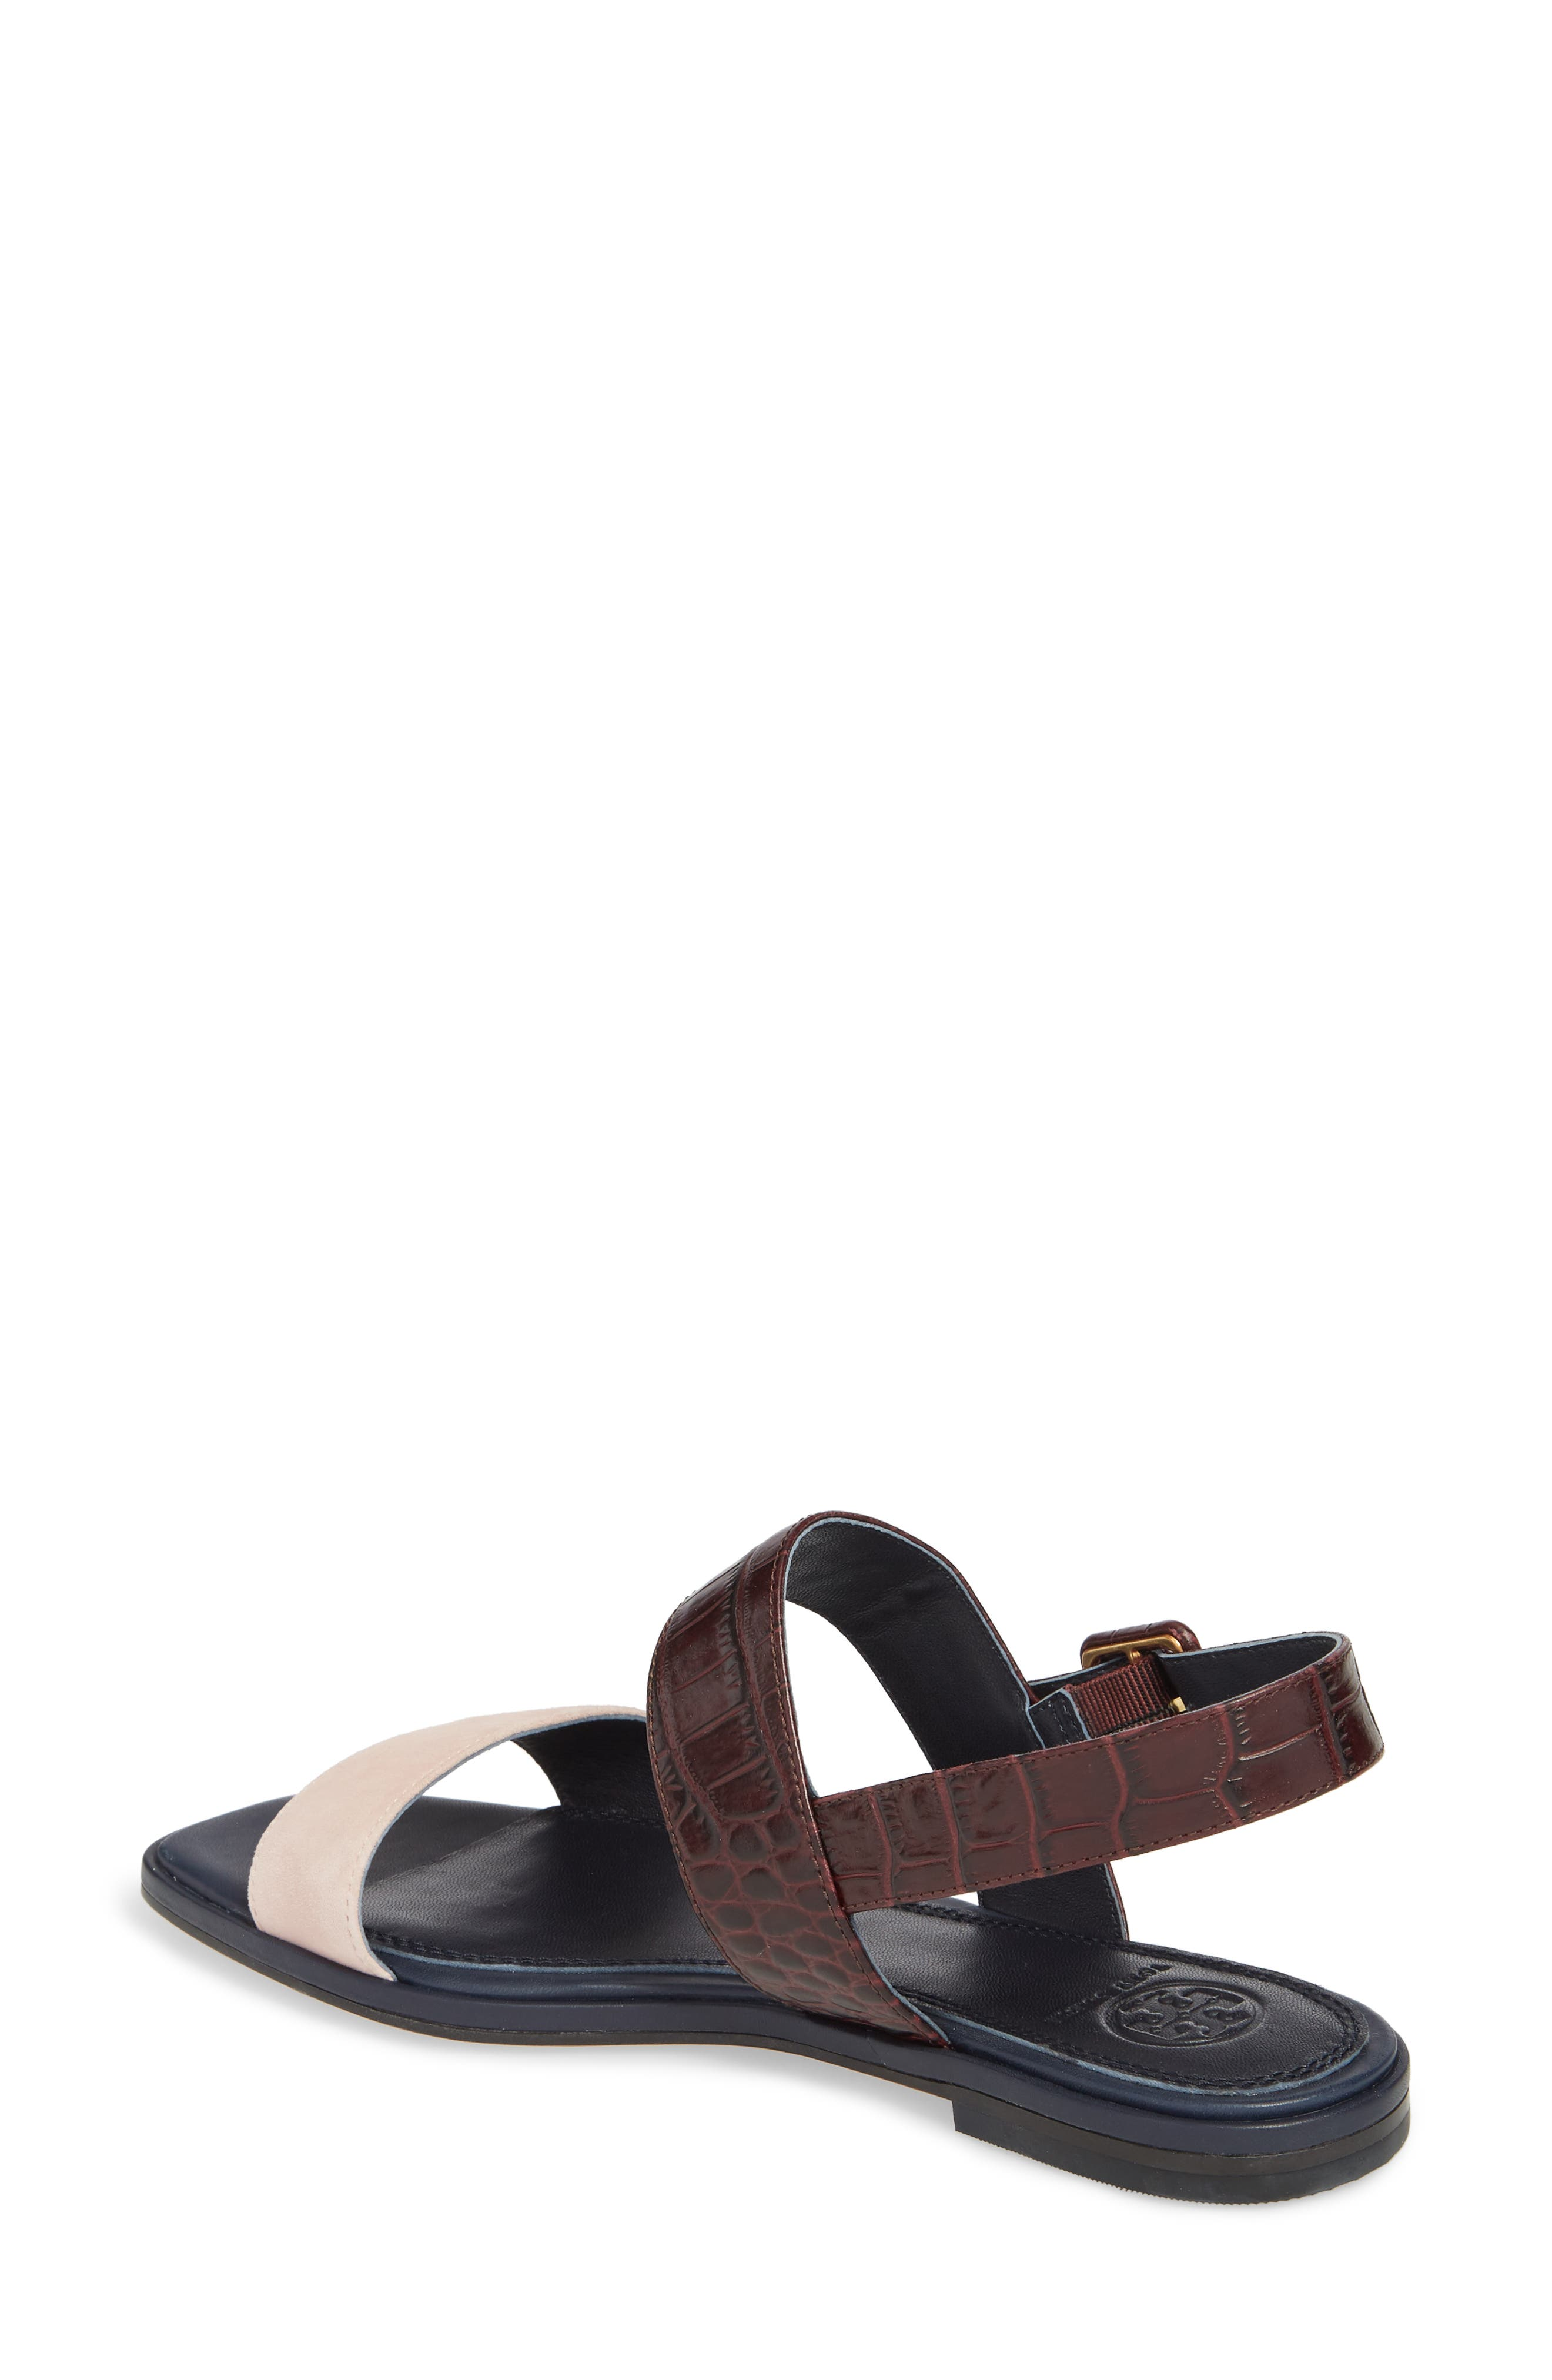 Delaney Double Strap Sandal,                             Alternate thumbnail 11, color,